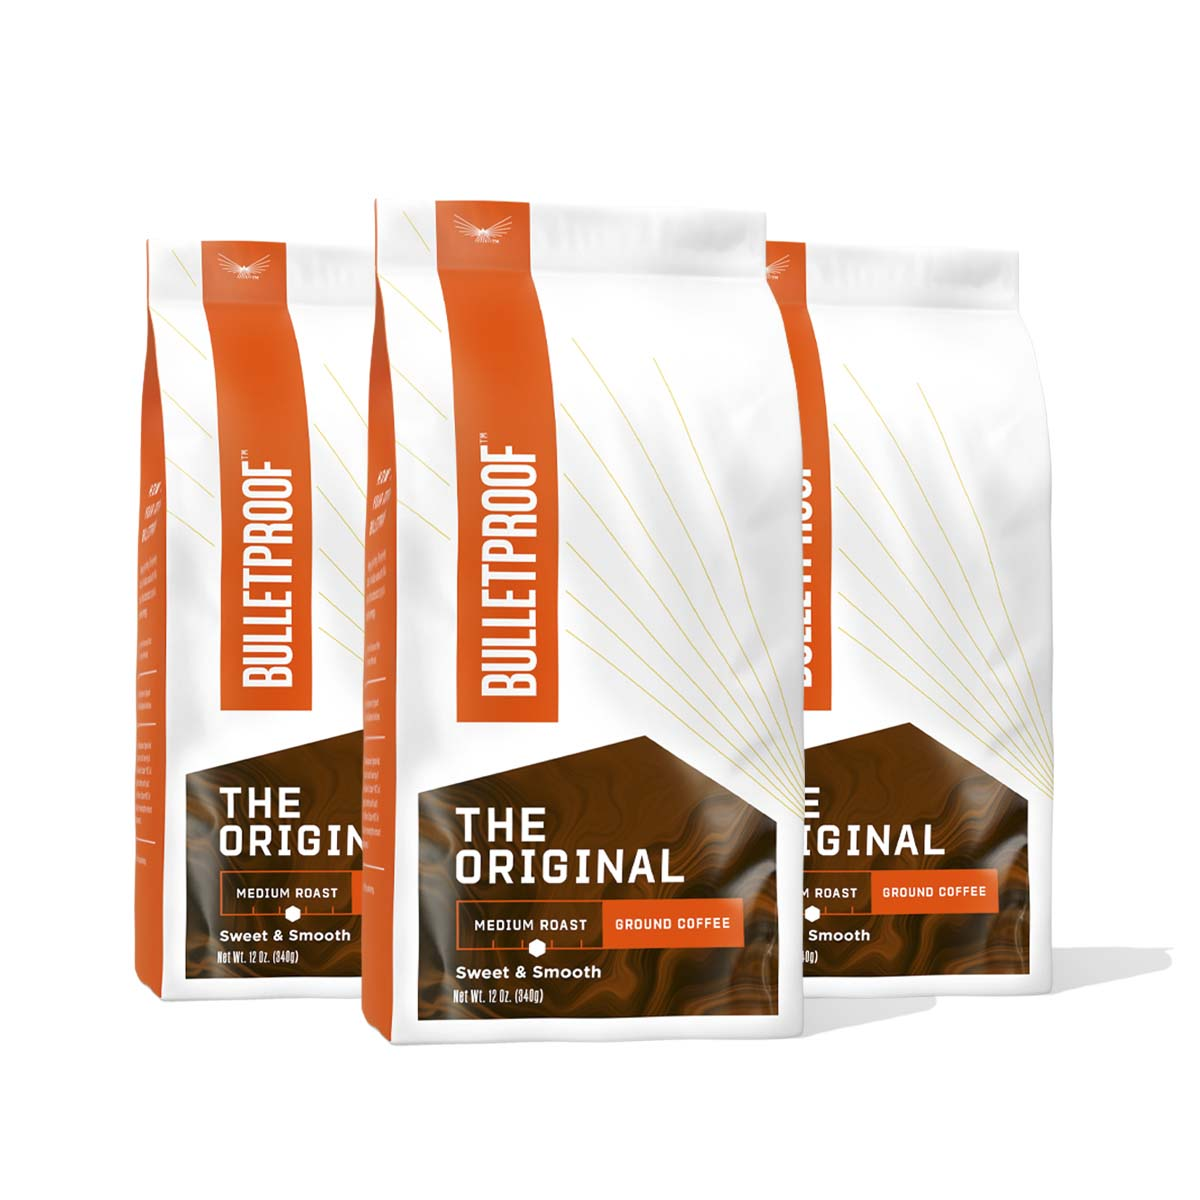 Bulletproof The Original Medium Roast Ground Coffee - 3 Pack